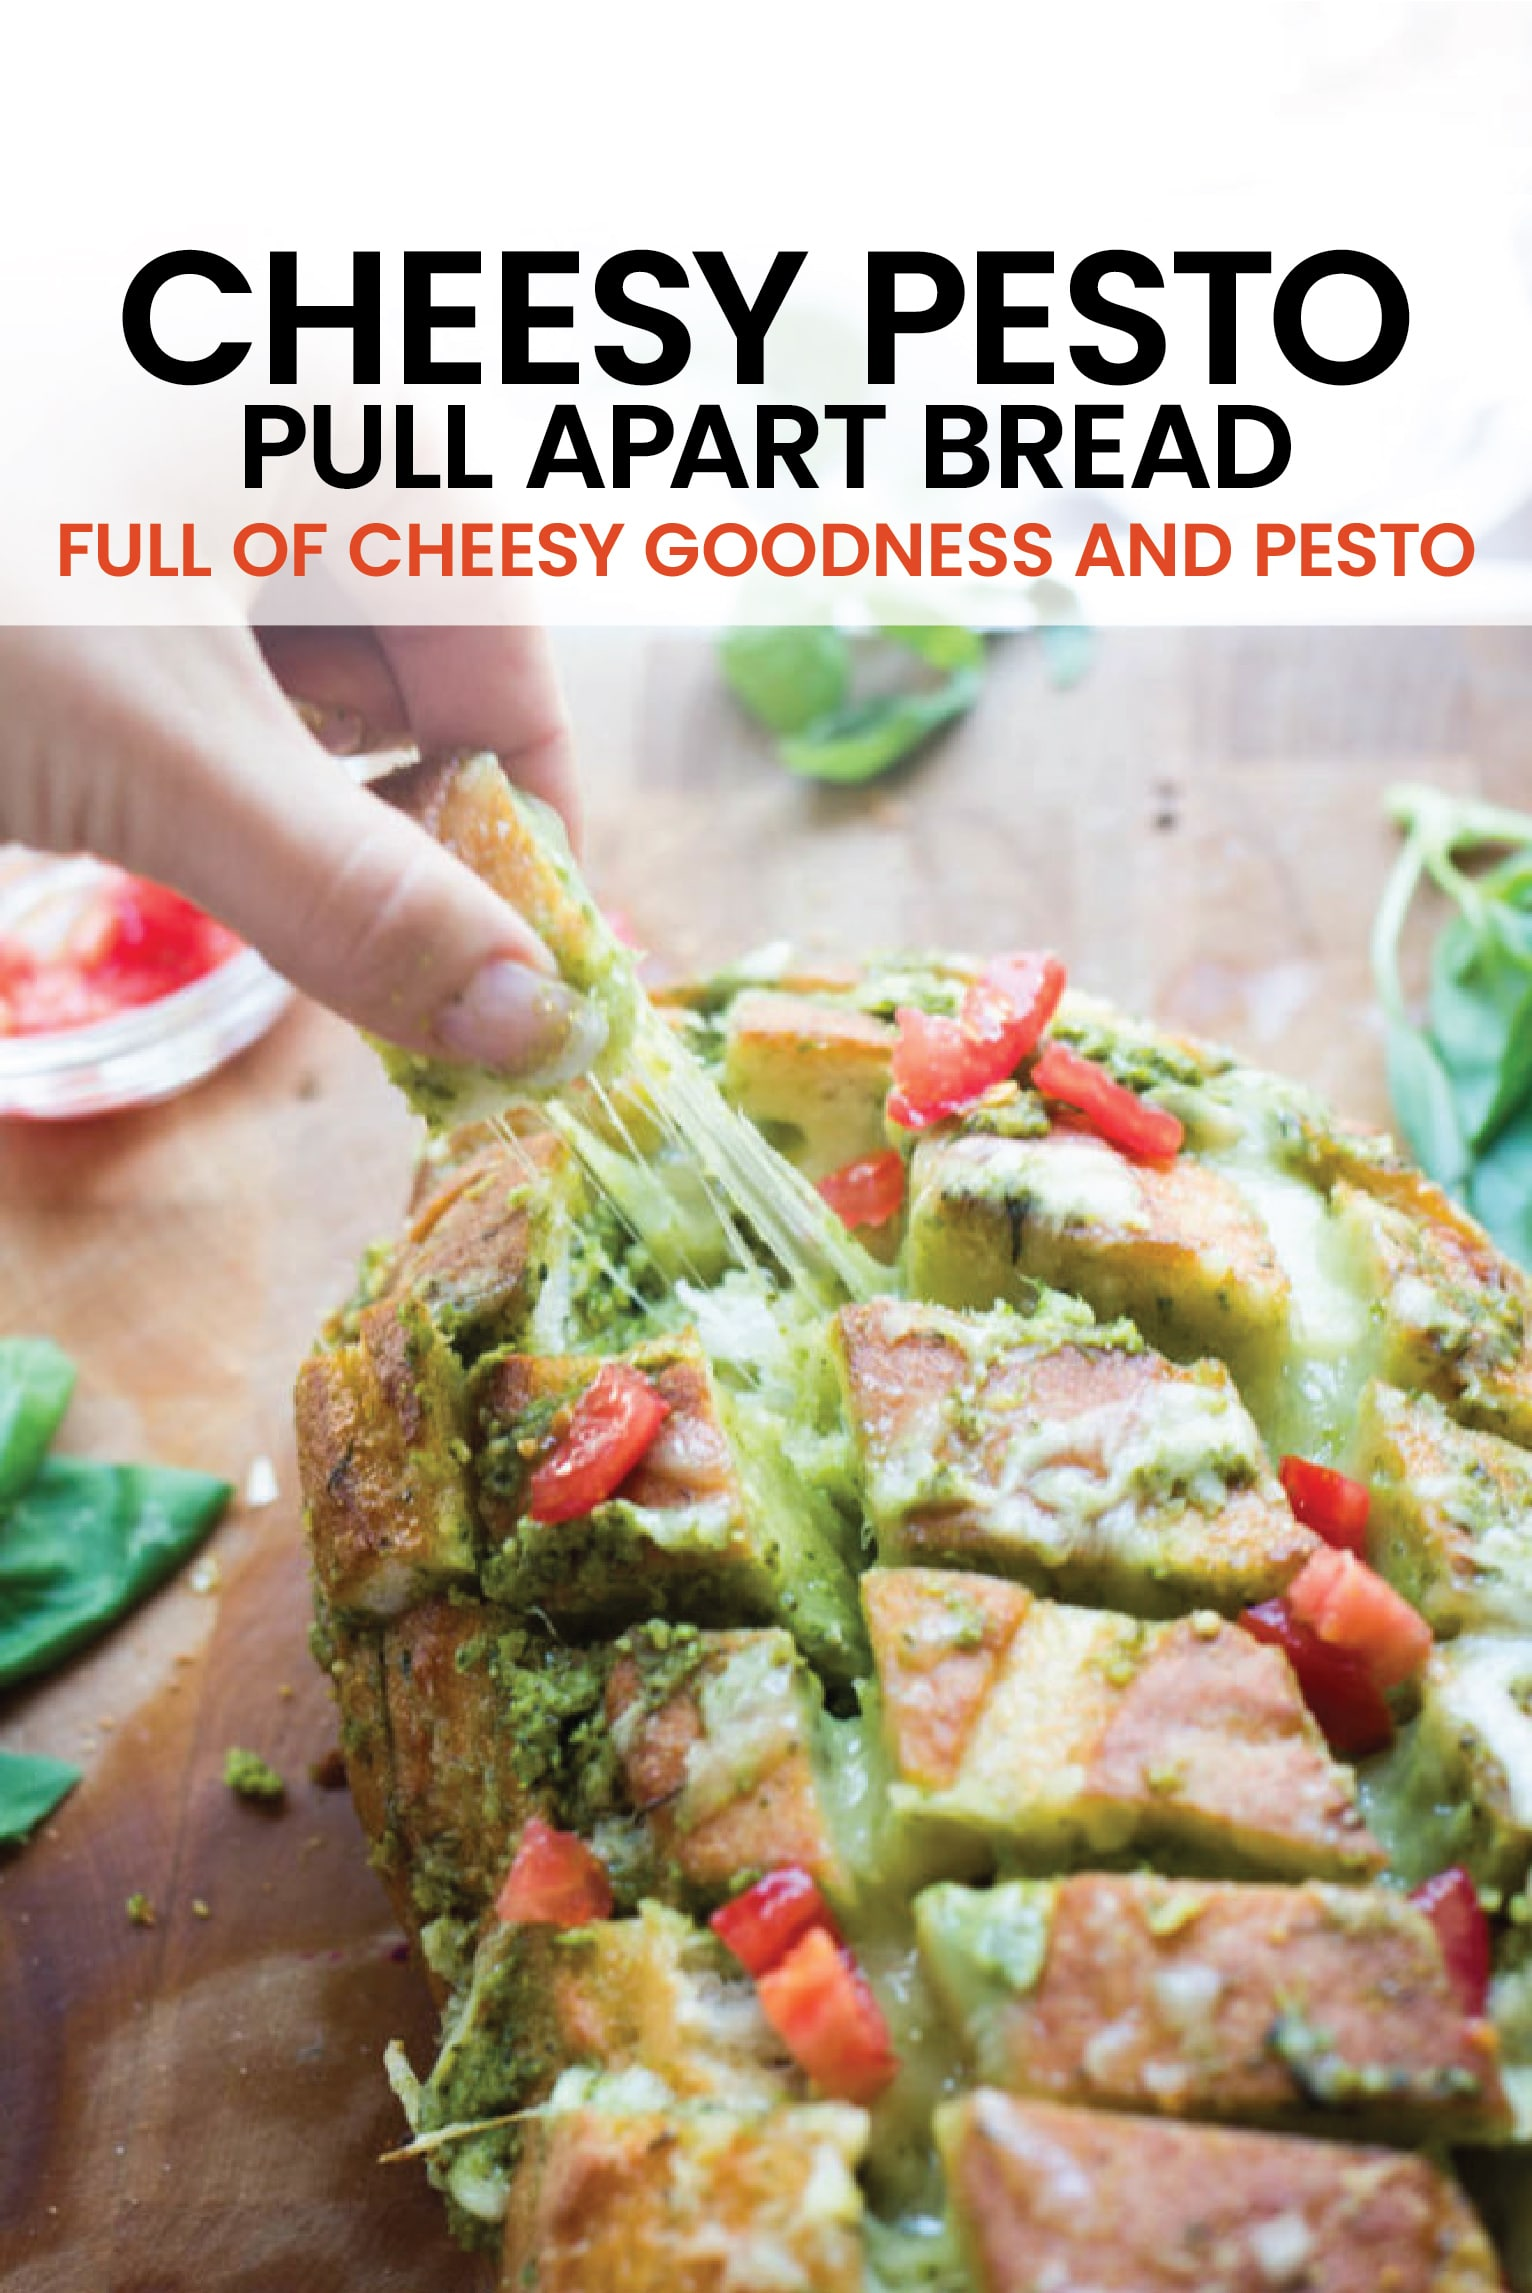 This scrumptious pull apart bread full of cheesy goodness and pesto is the ideal way to use up all that fresh basil hanging around in your garden now!  #pesto #pullapartbread